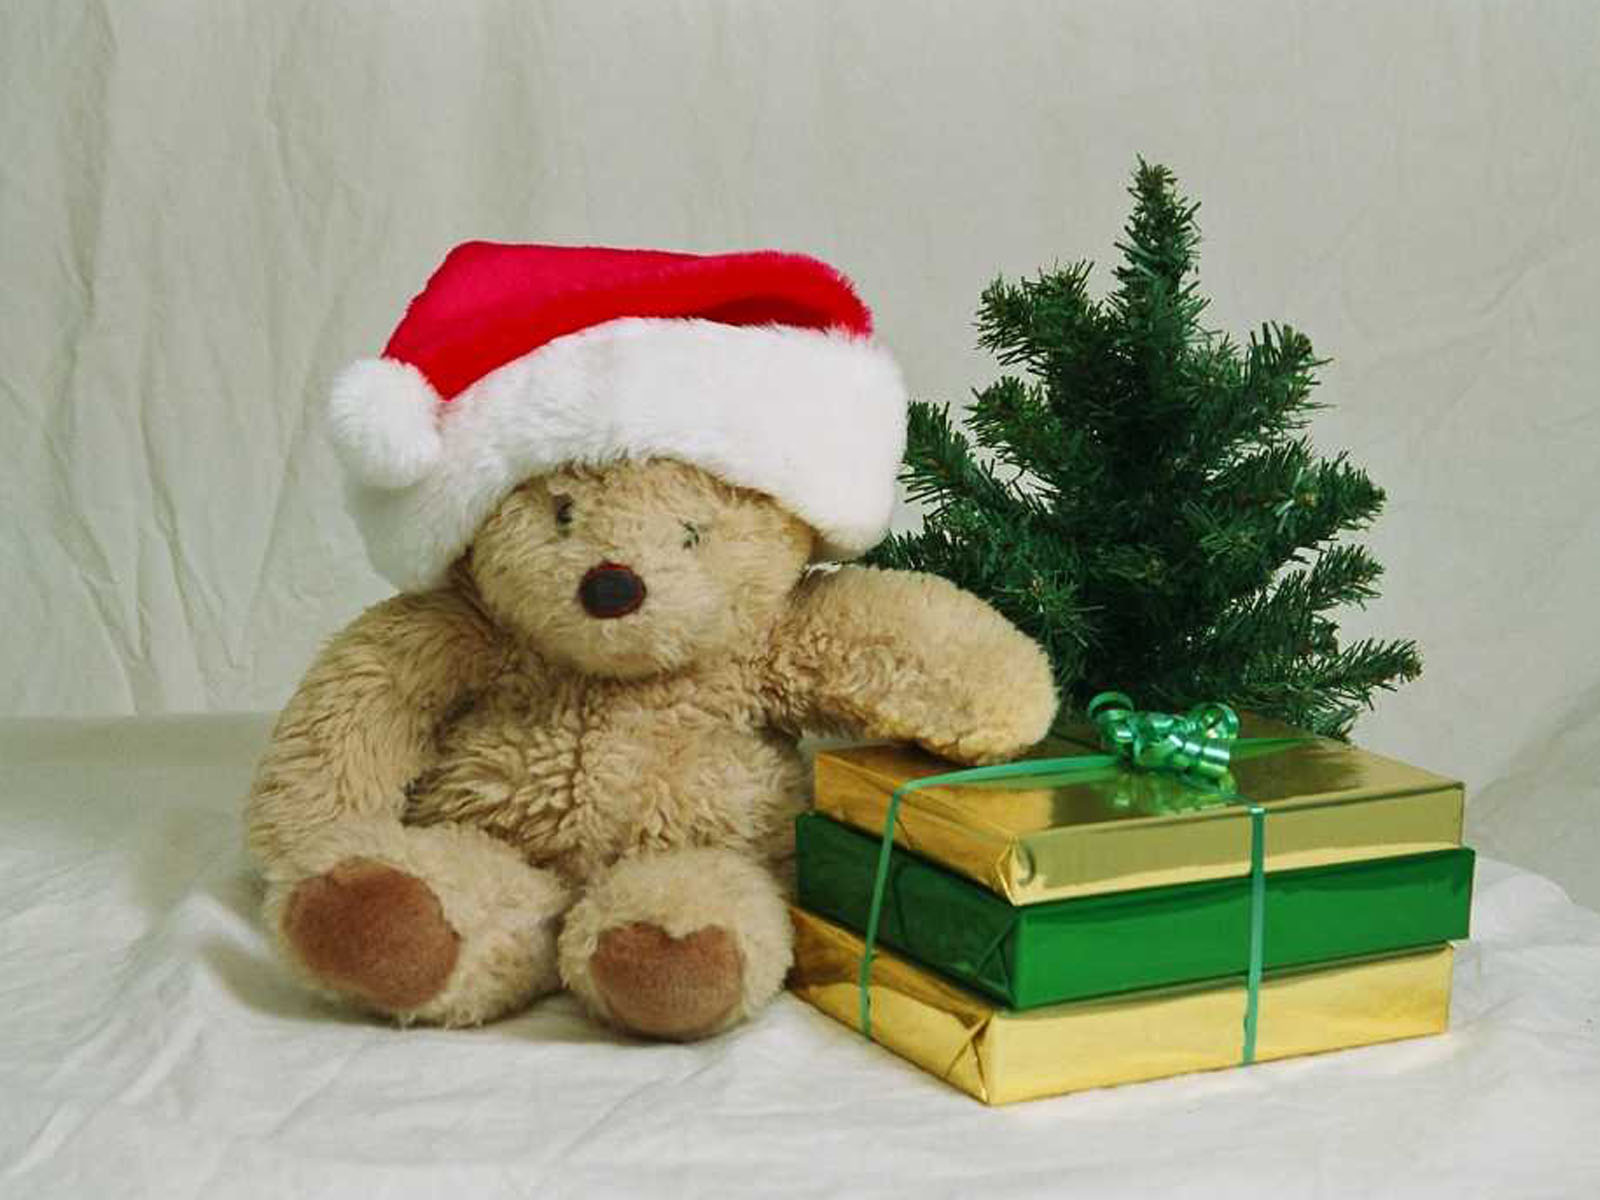 Christmas Teddy Bear Wallpaper: Wallpaper: Christmas Teddy Bear Wallpapers